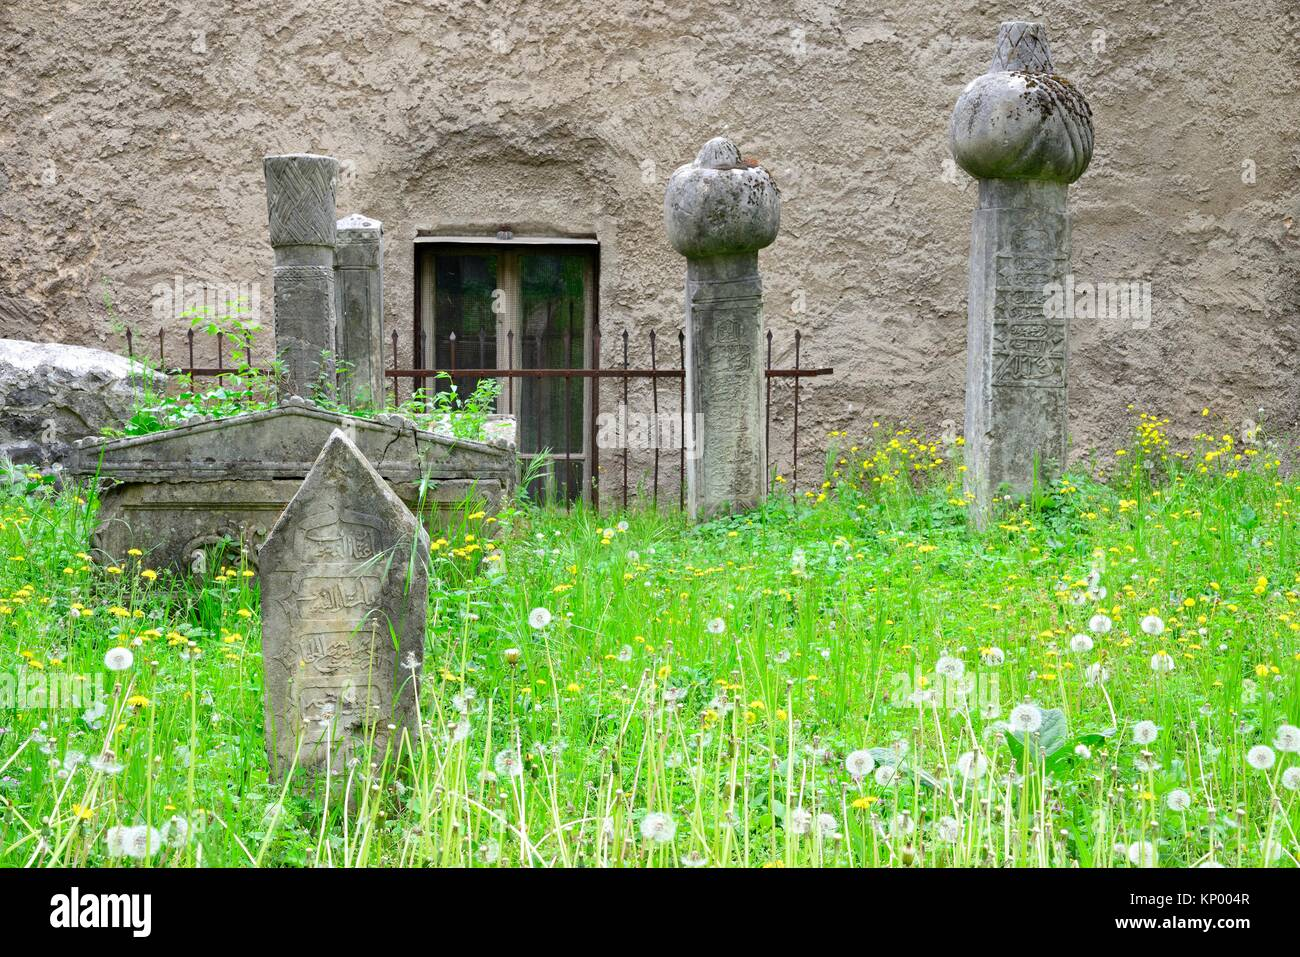 Cejvan Cementery in Mostar, Bosnia and Herzegovina Stock Photo